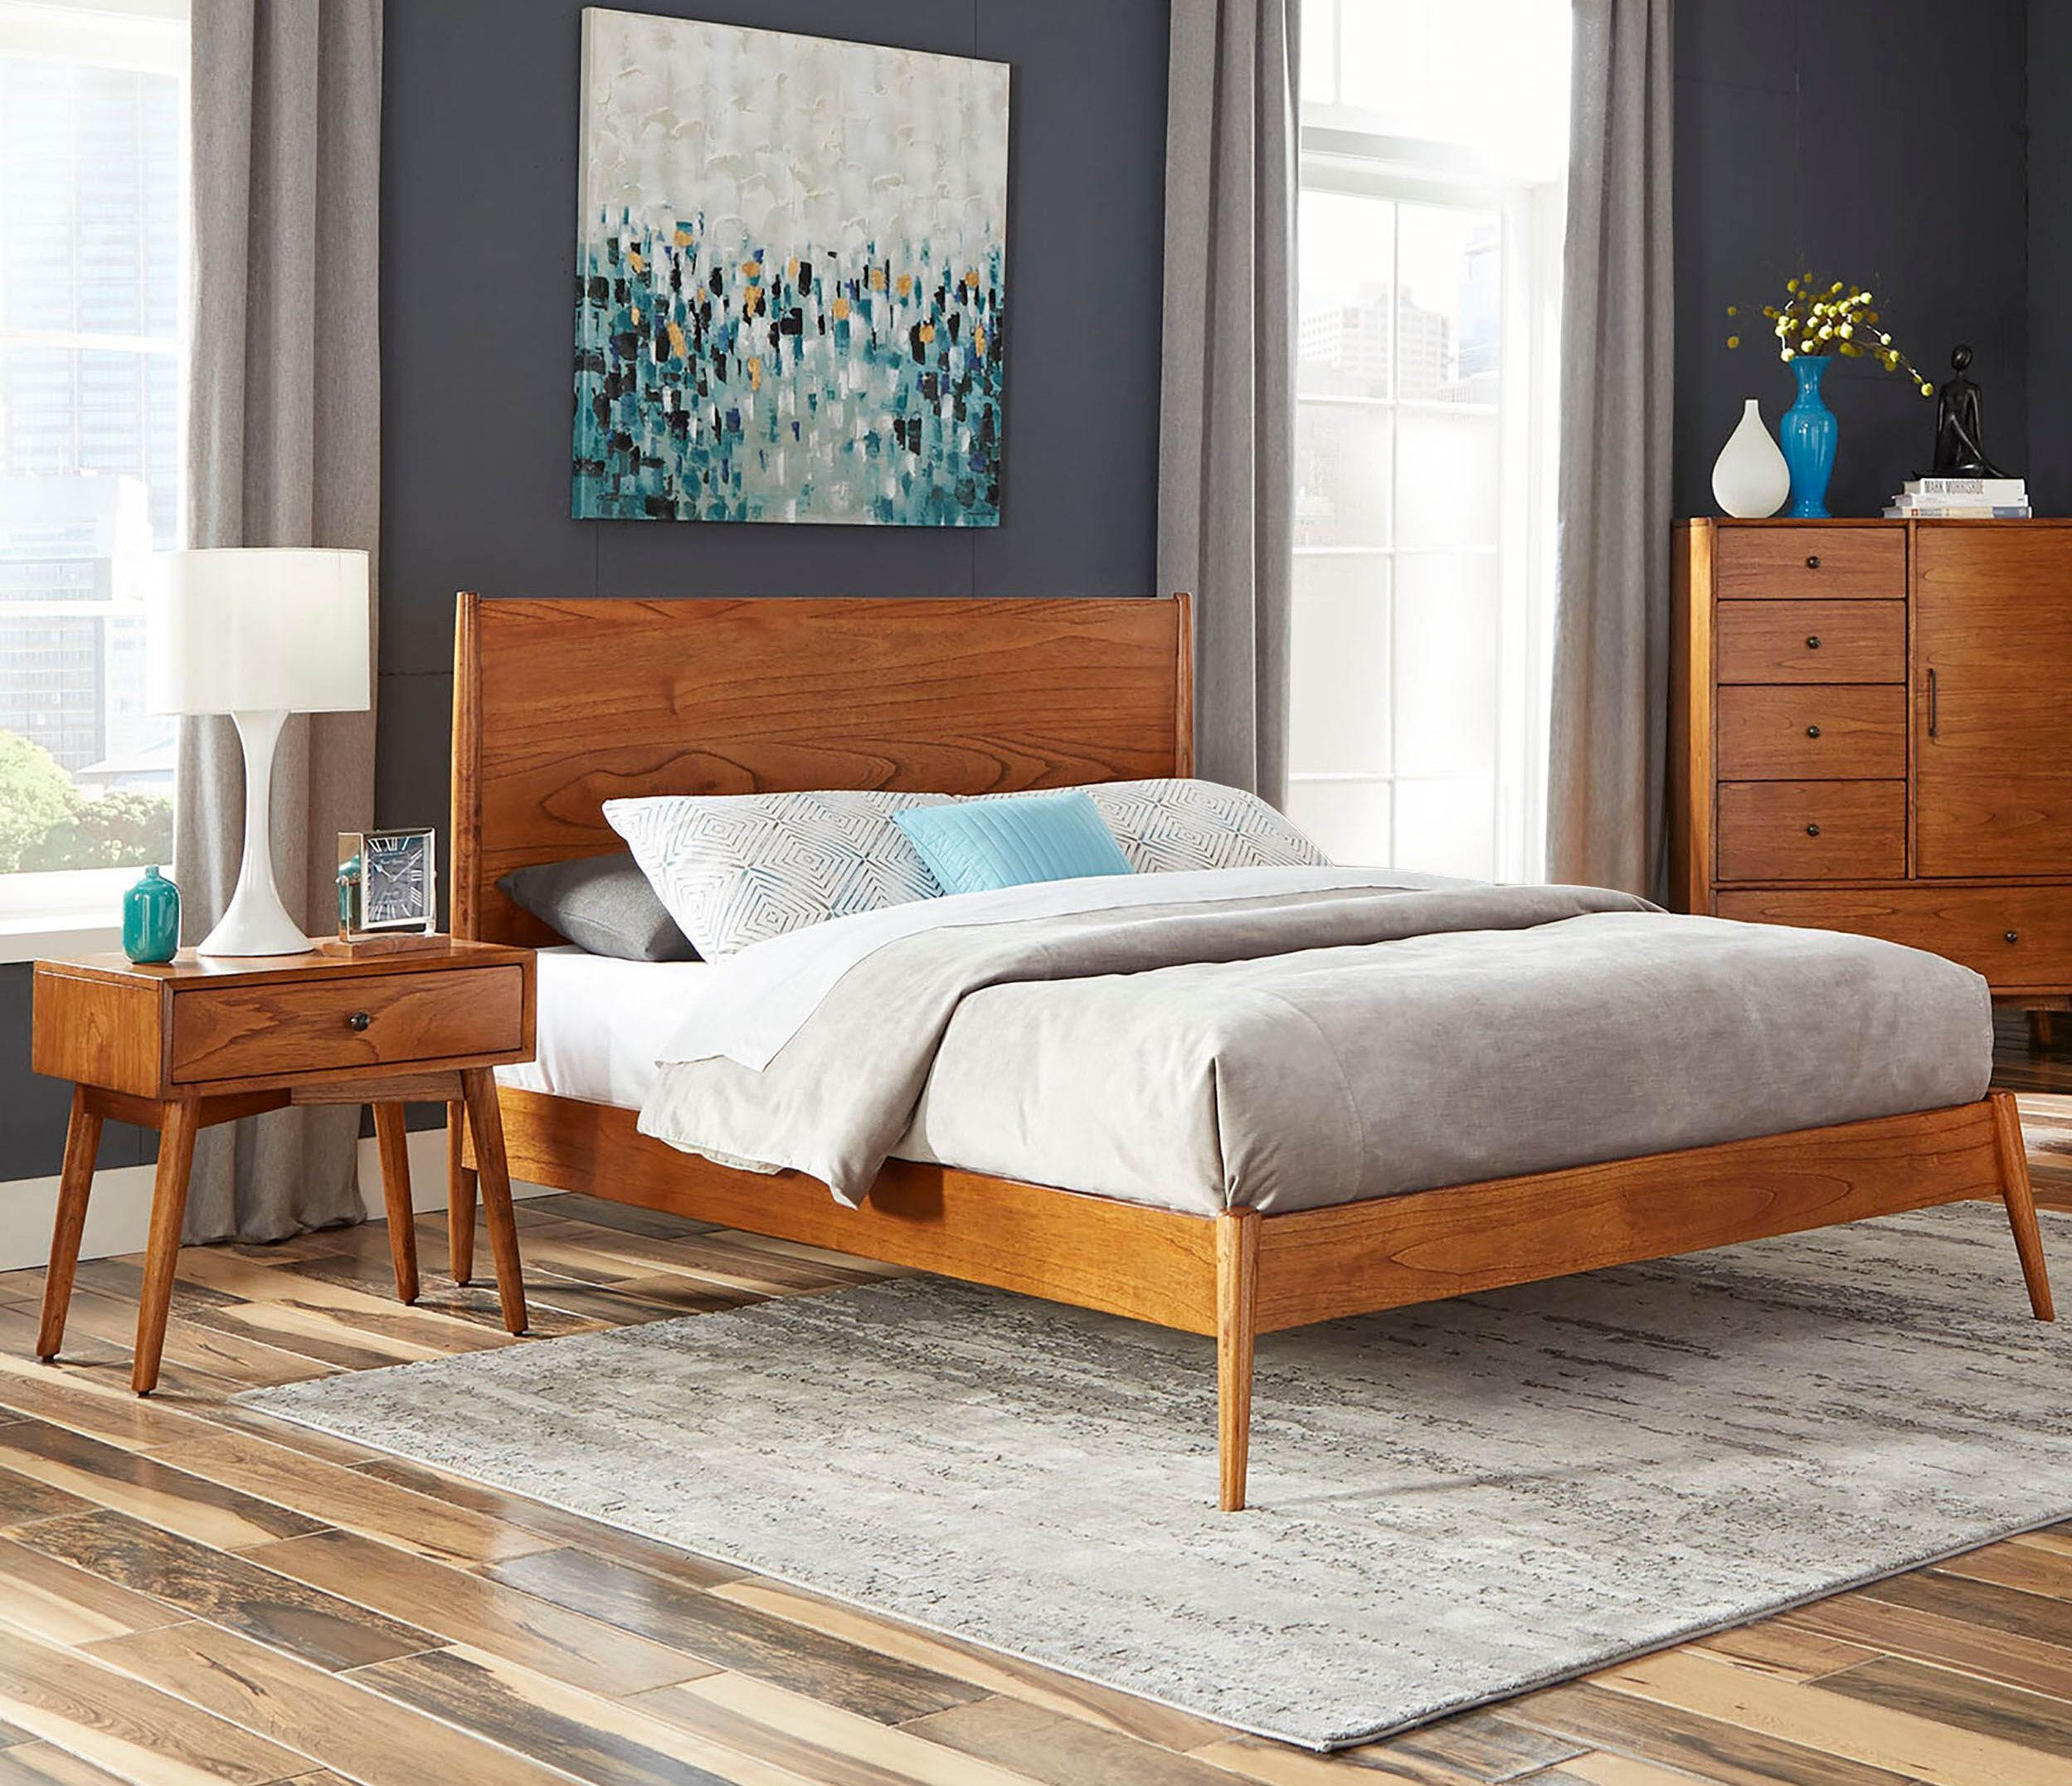 Sunny Designs American Modern Orange Brown 2pc Bedroom Set With King Bed in 10 Smart Concepts of How to Make Modern Bedroom Sets King